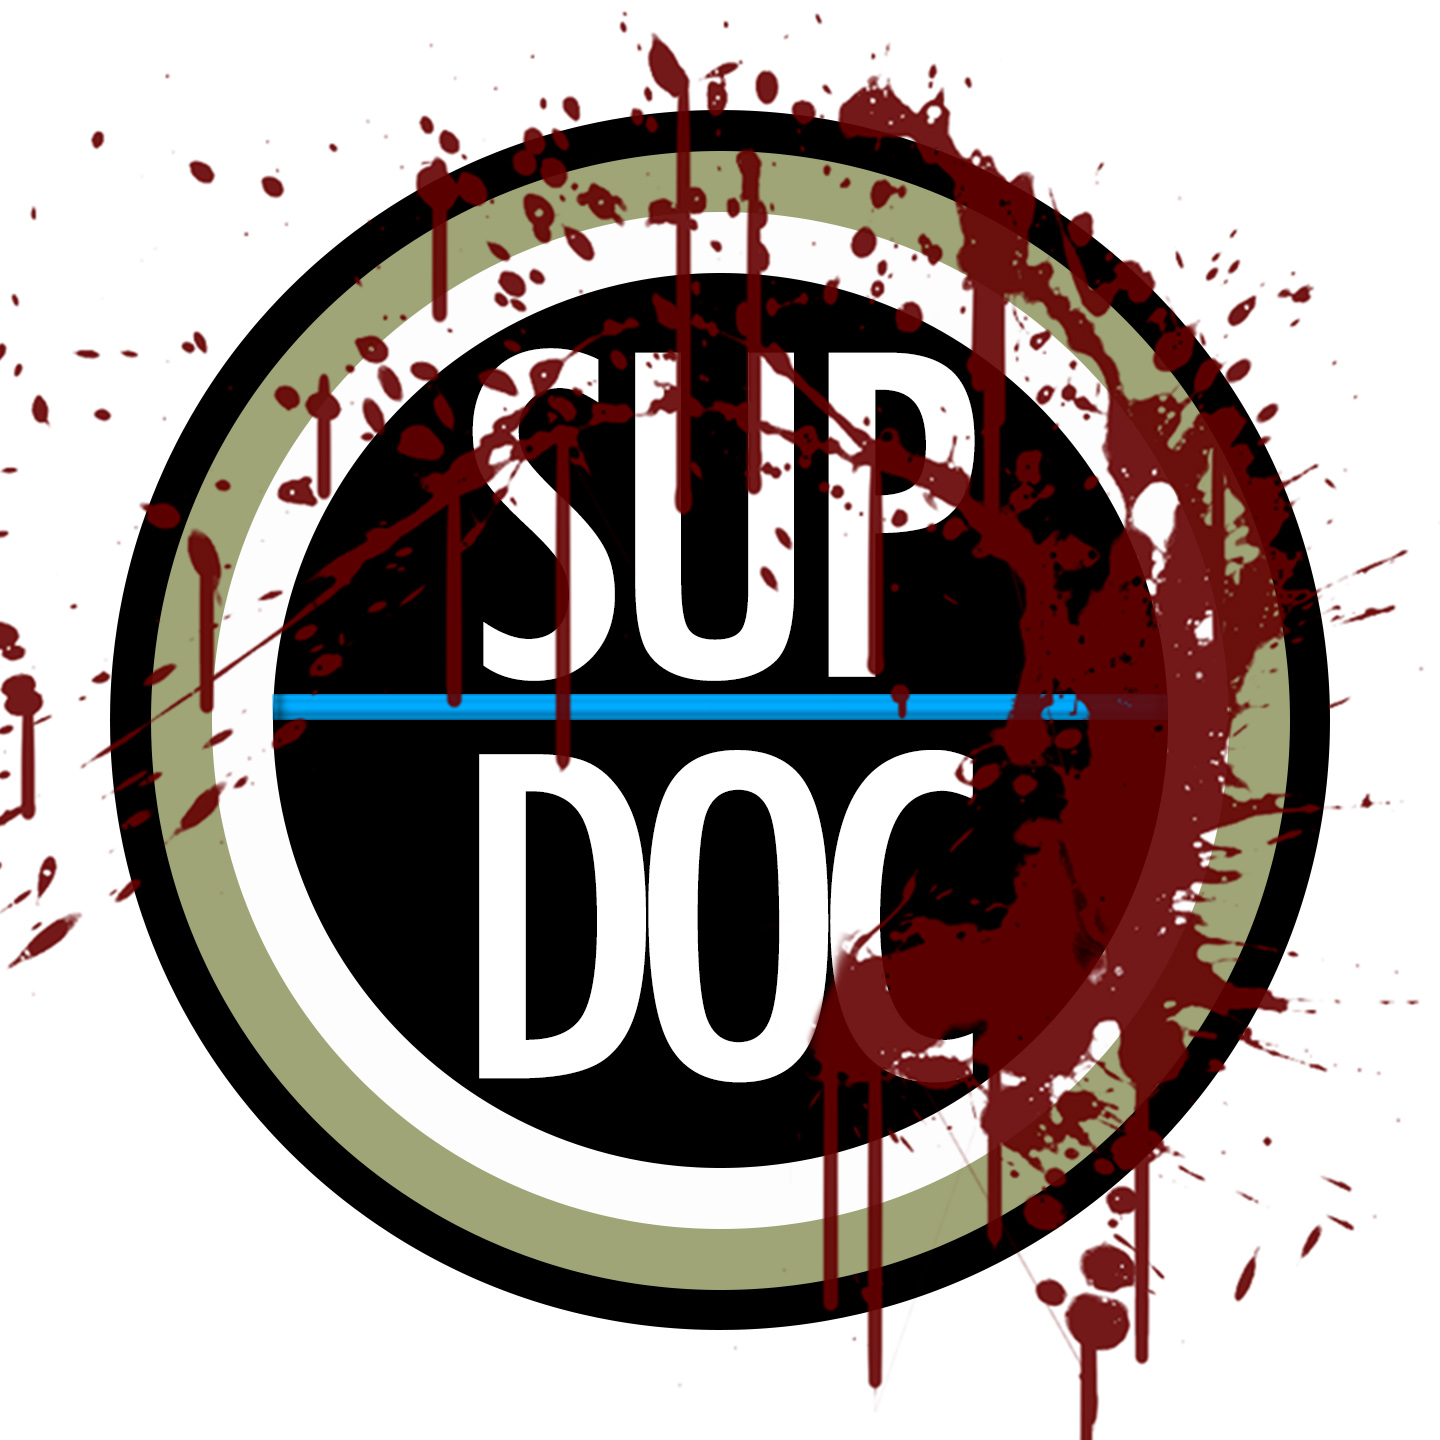 Sup Doc Presents Mayhem Month - Every Monday in May a True Crime Documentary